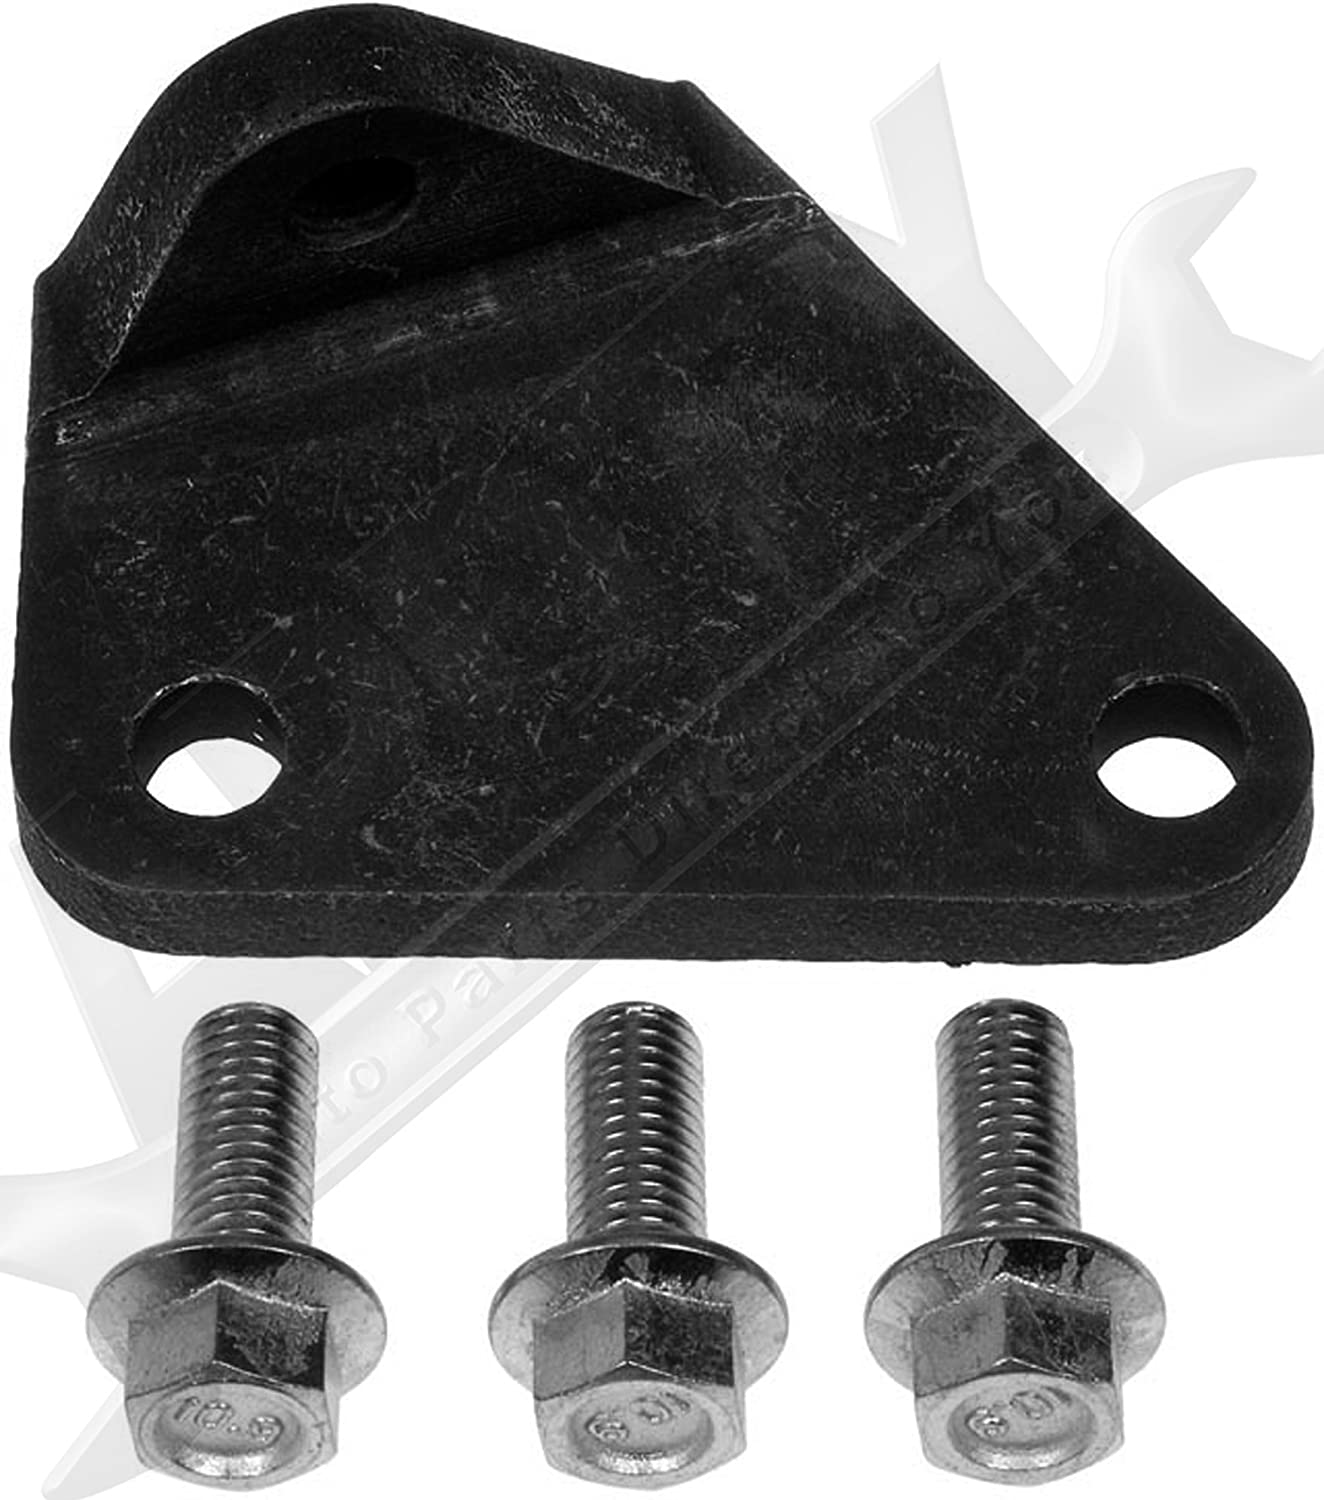 Amazon Com Apdty 028218 Exhaust Manifold Clamp Fix For The Broken Bolt Inside Cylinder Head Replaces 11518860 Automotive